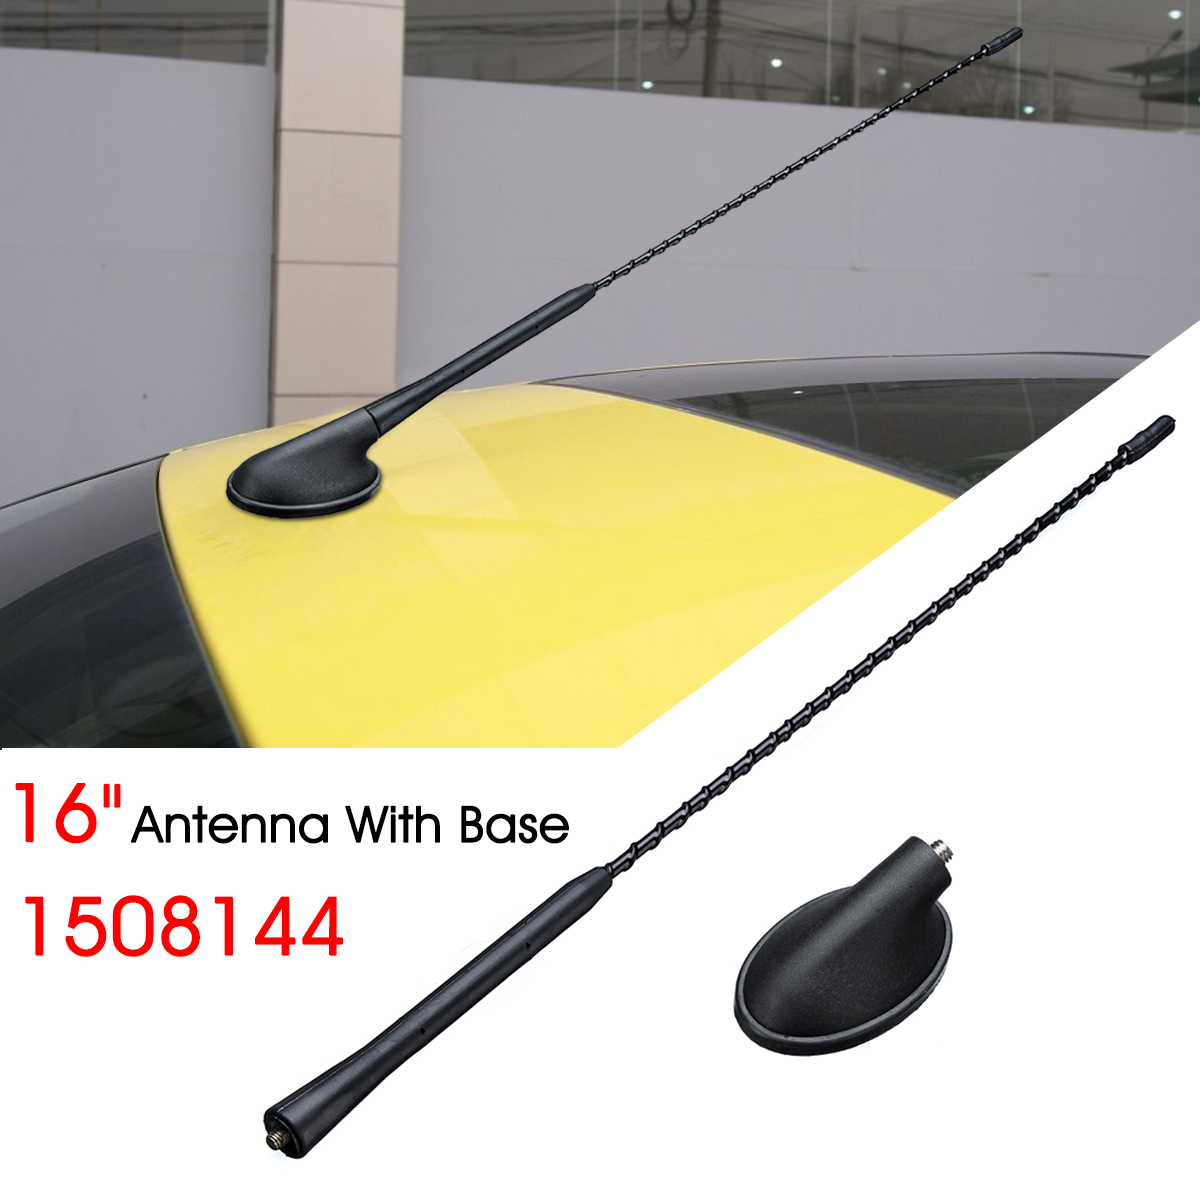 ANTENNA AERIAL AND BASE FOR FOCUS FIESTA MONDEO PUMA TRANSIT CONNECT